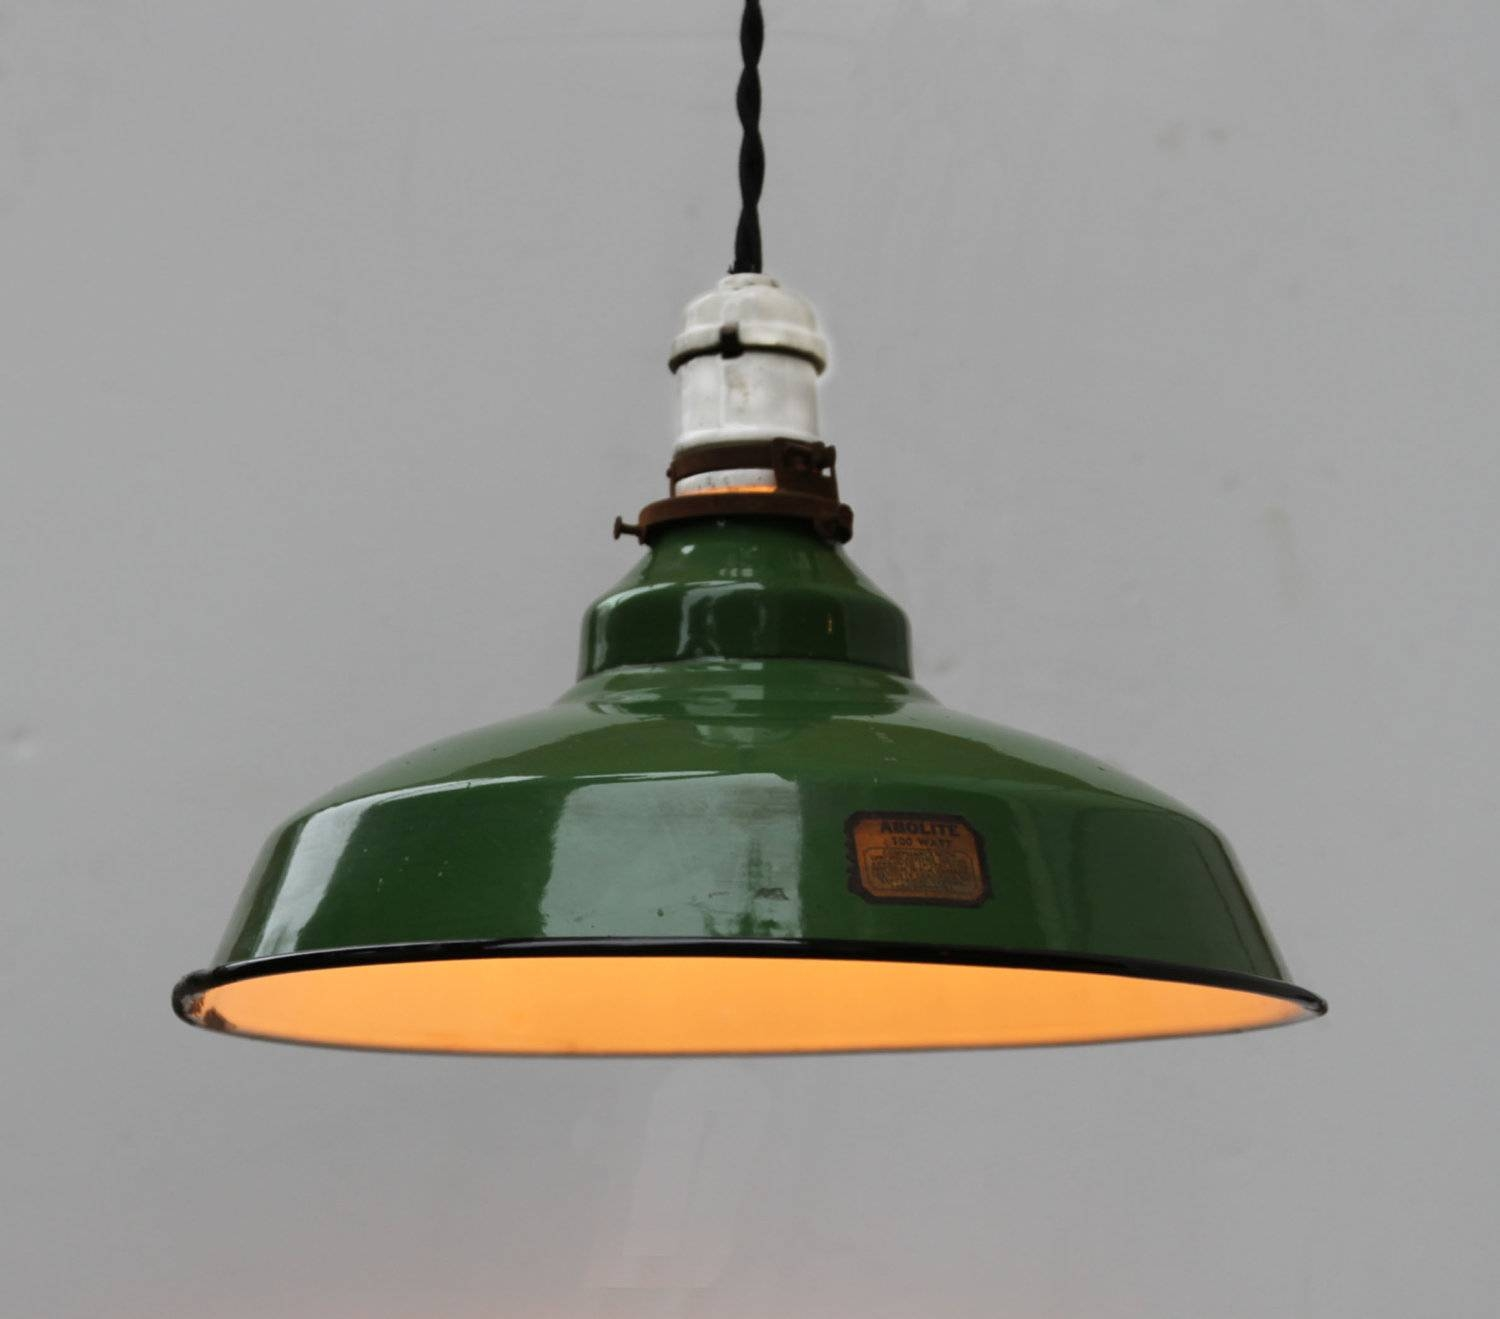 Home Lighting : Affordable Clear Glass Pendant Light Home Depot inside Industrial Looking Pendant Lights Fixtures (Image 6 of 15)